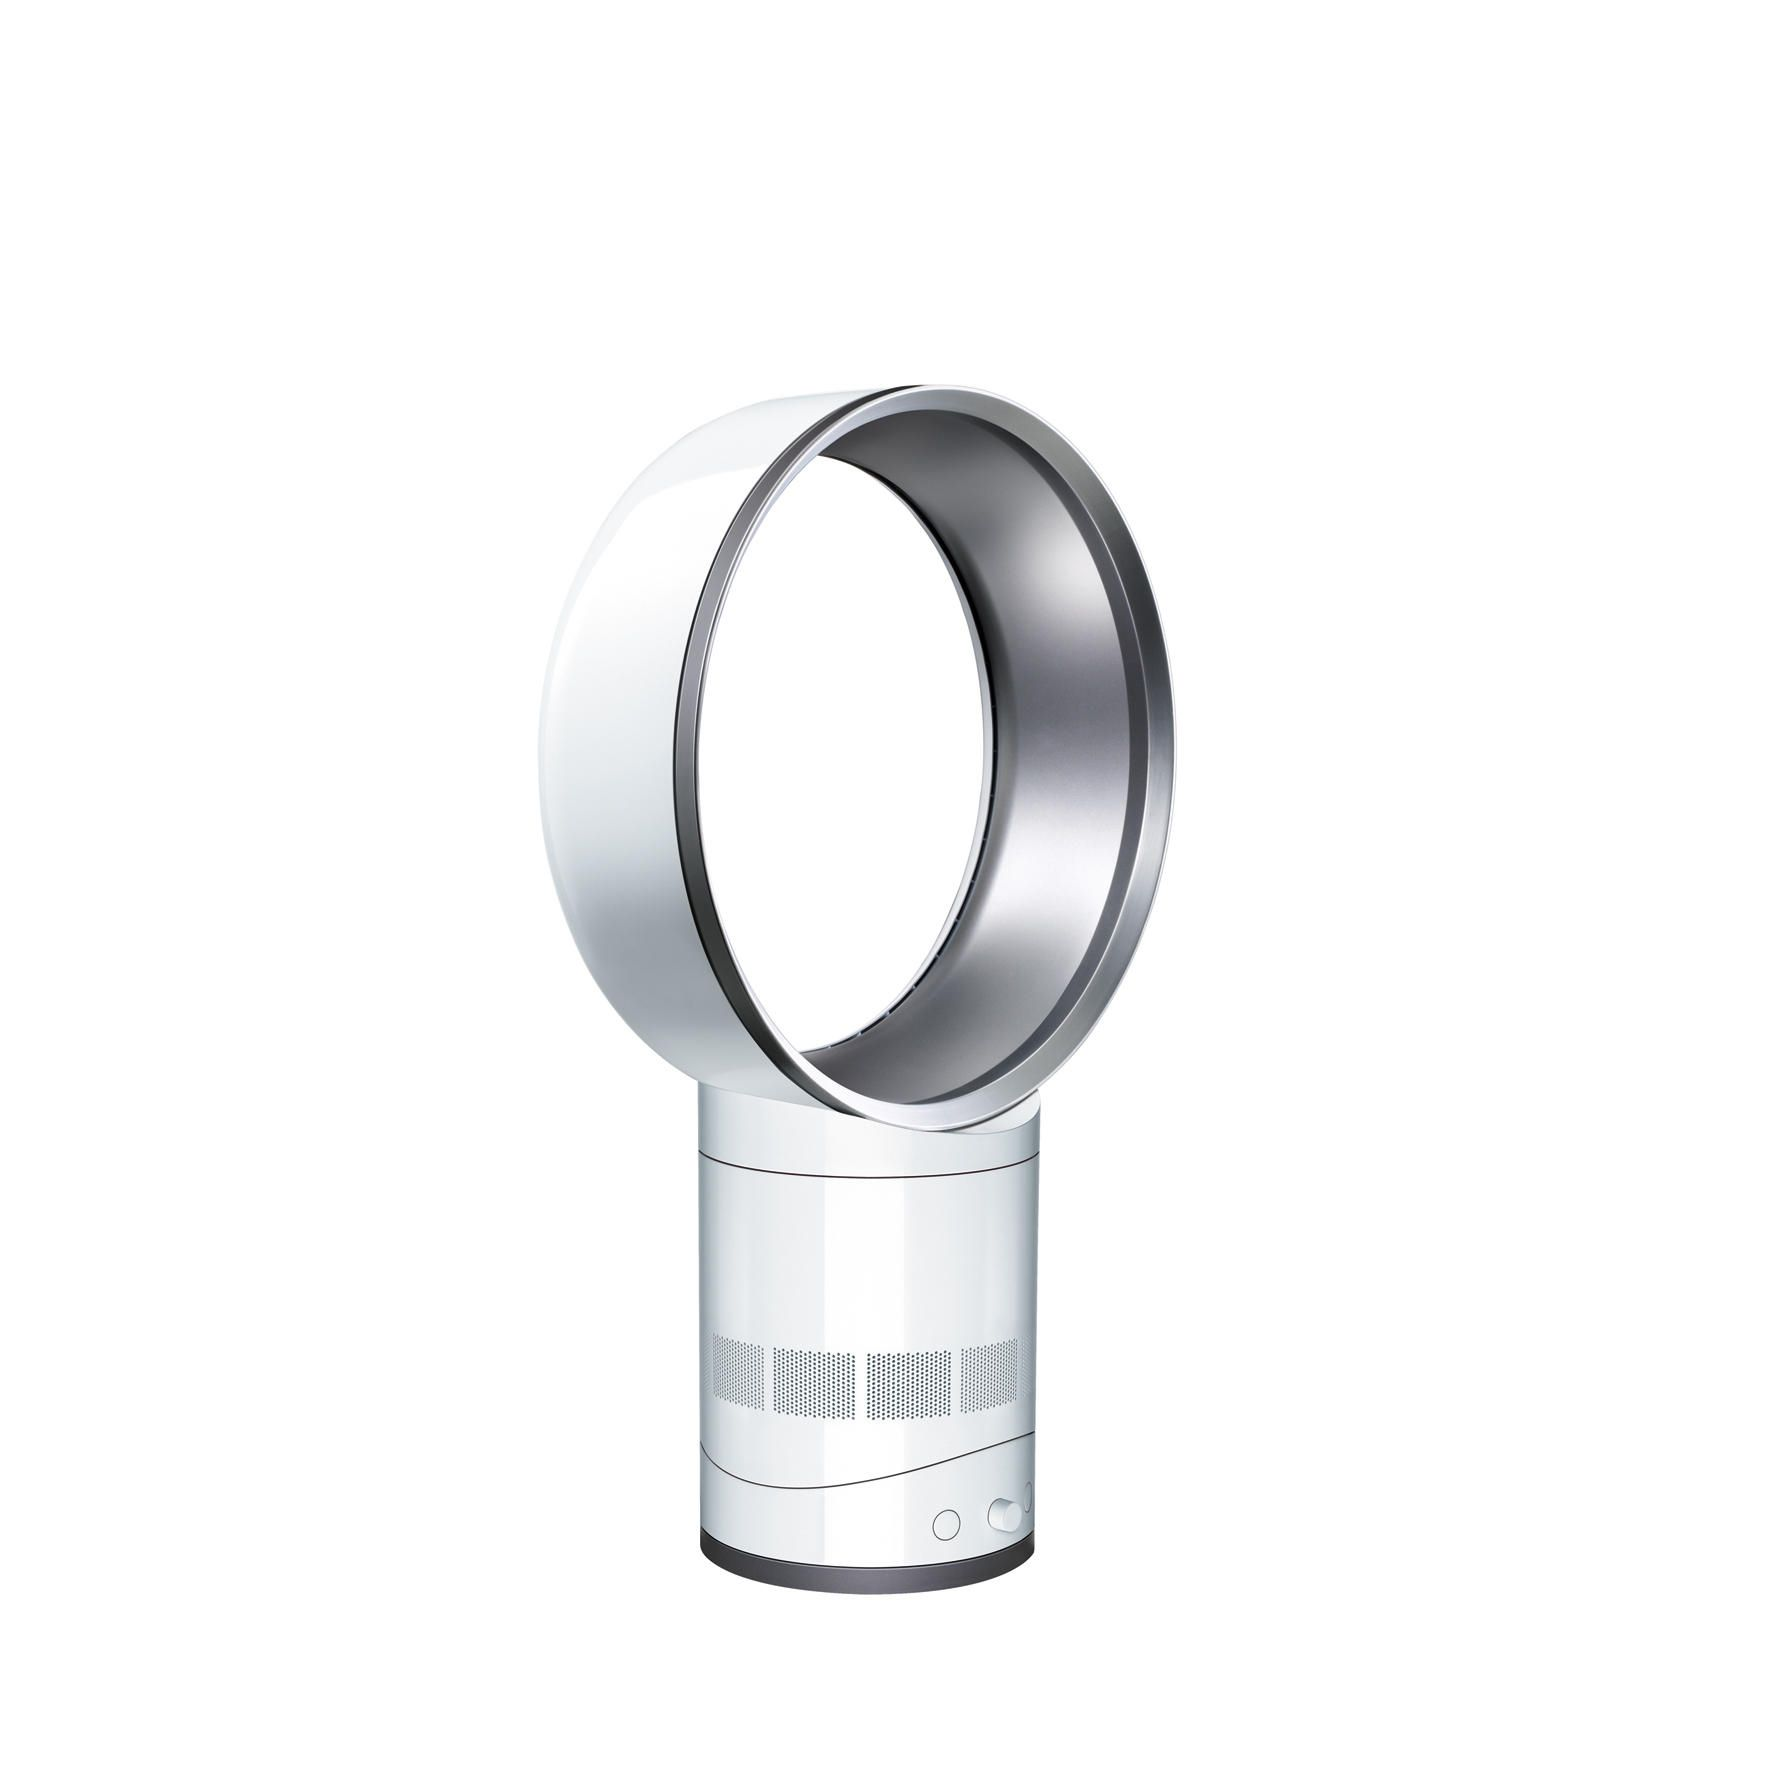 Dyson 10 in. Air Multiplier Table Fan - White